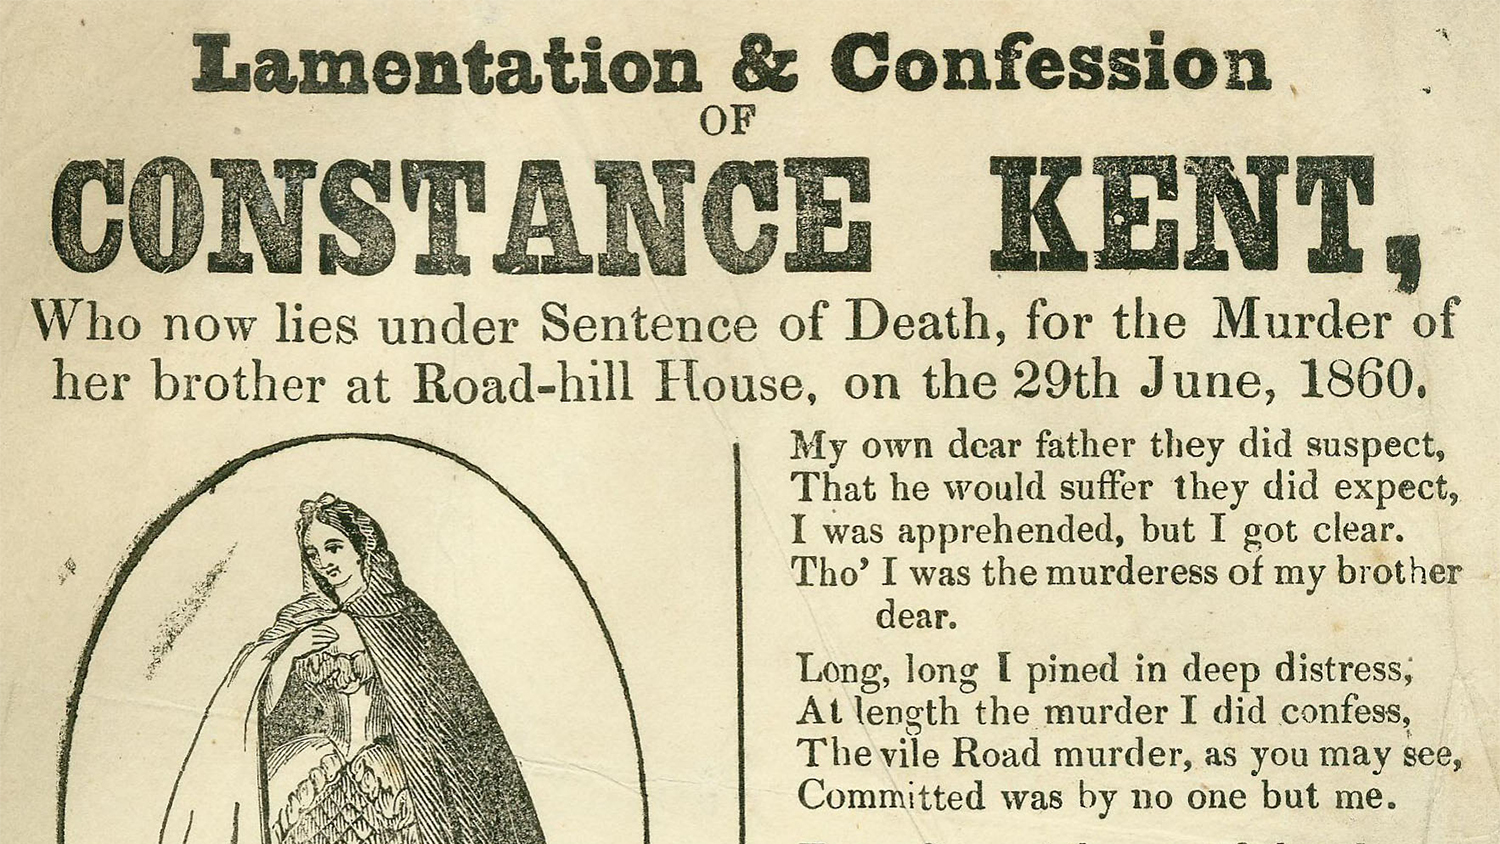 Image from a broadside regarding Constance Kent case